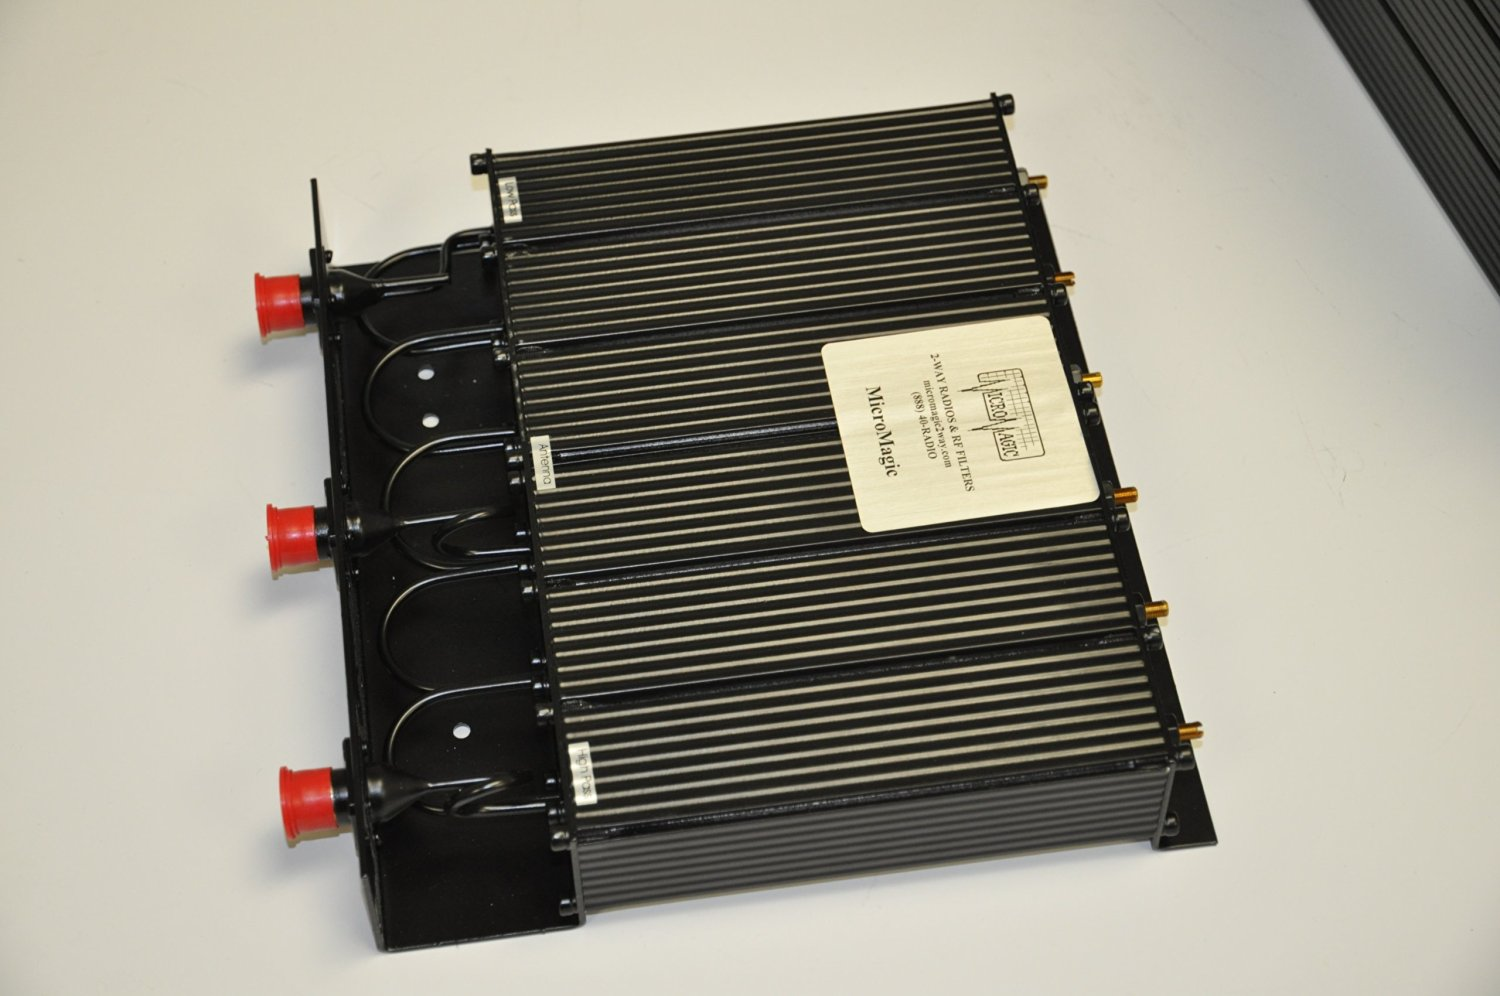 UHF Compact Band–Reject Duplexer MICRO-4202-C6